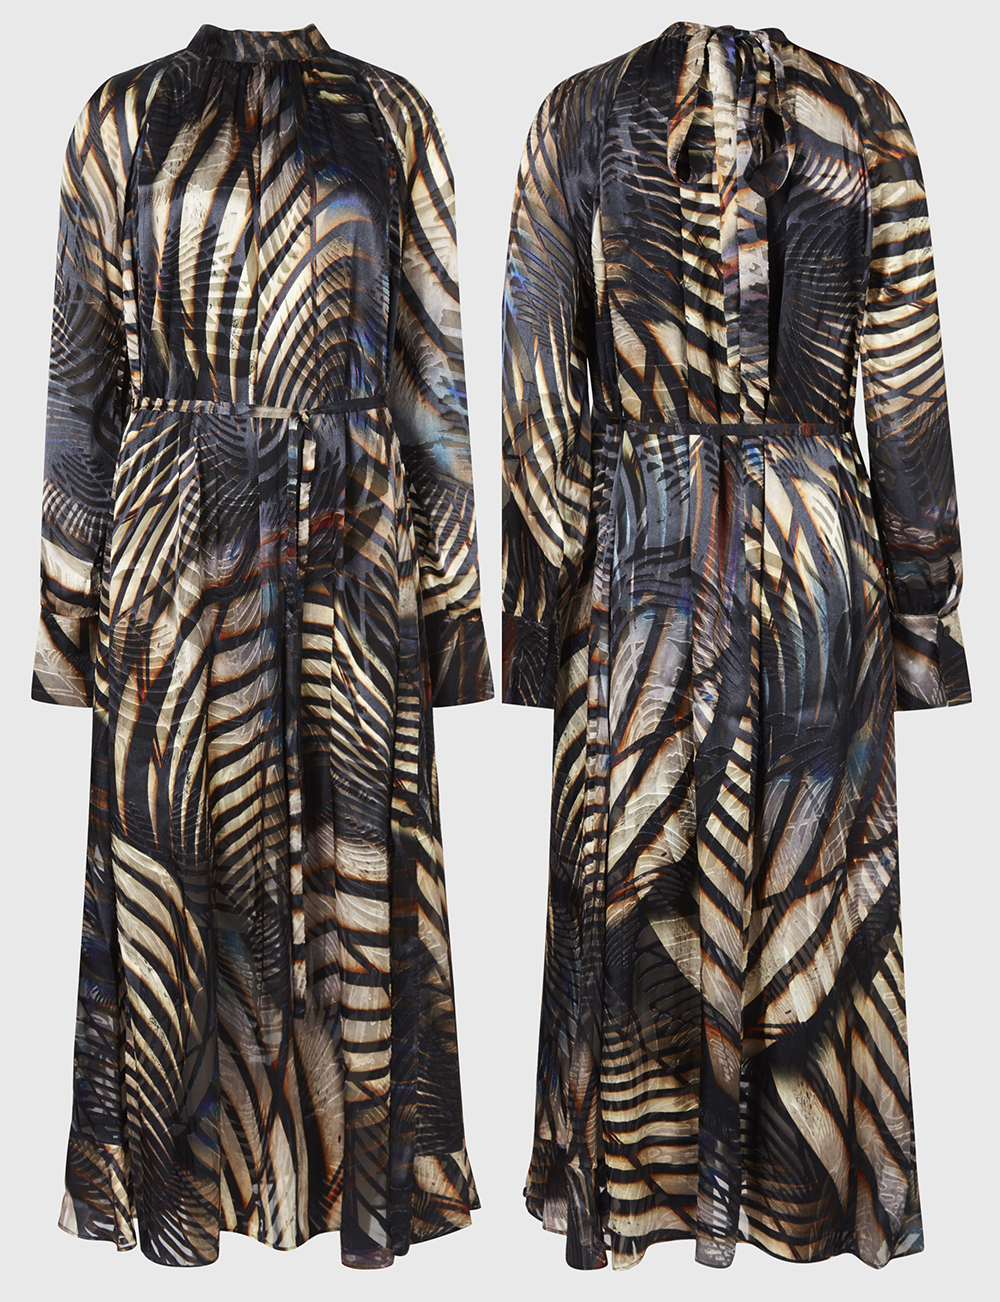 AllSaints Animal Print Dress 2021. Allsaints Carolina Unison Dress. Animal Print Dresses Spring Summer 2021. Animal print Dress for Royal Ascot 2021. Dress with Animal Print 2021. Spring Wedding Guest Outfits 2021. How to wear Animal Print 2021. Spring Fashion outfits 2021. Royal Ascot outfit ideas 2021. What to wear for Royal Ascot 2021.